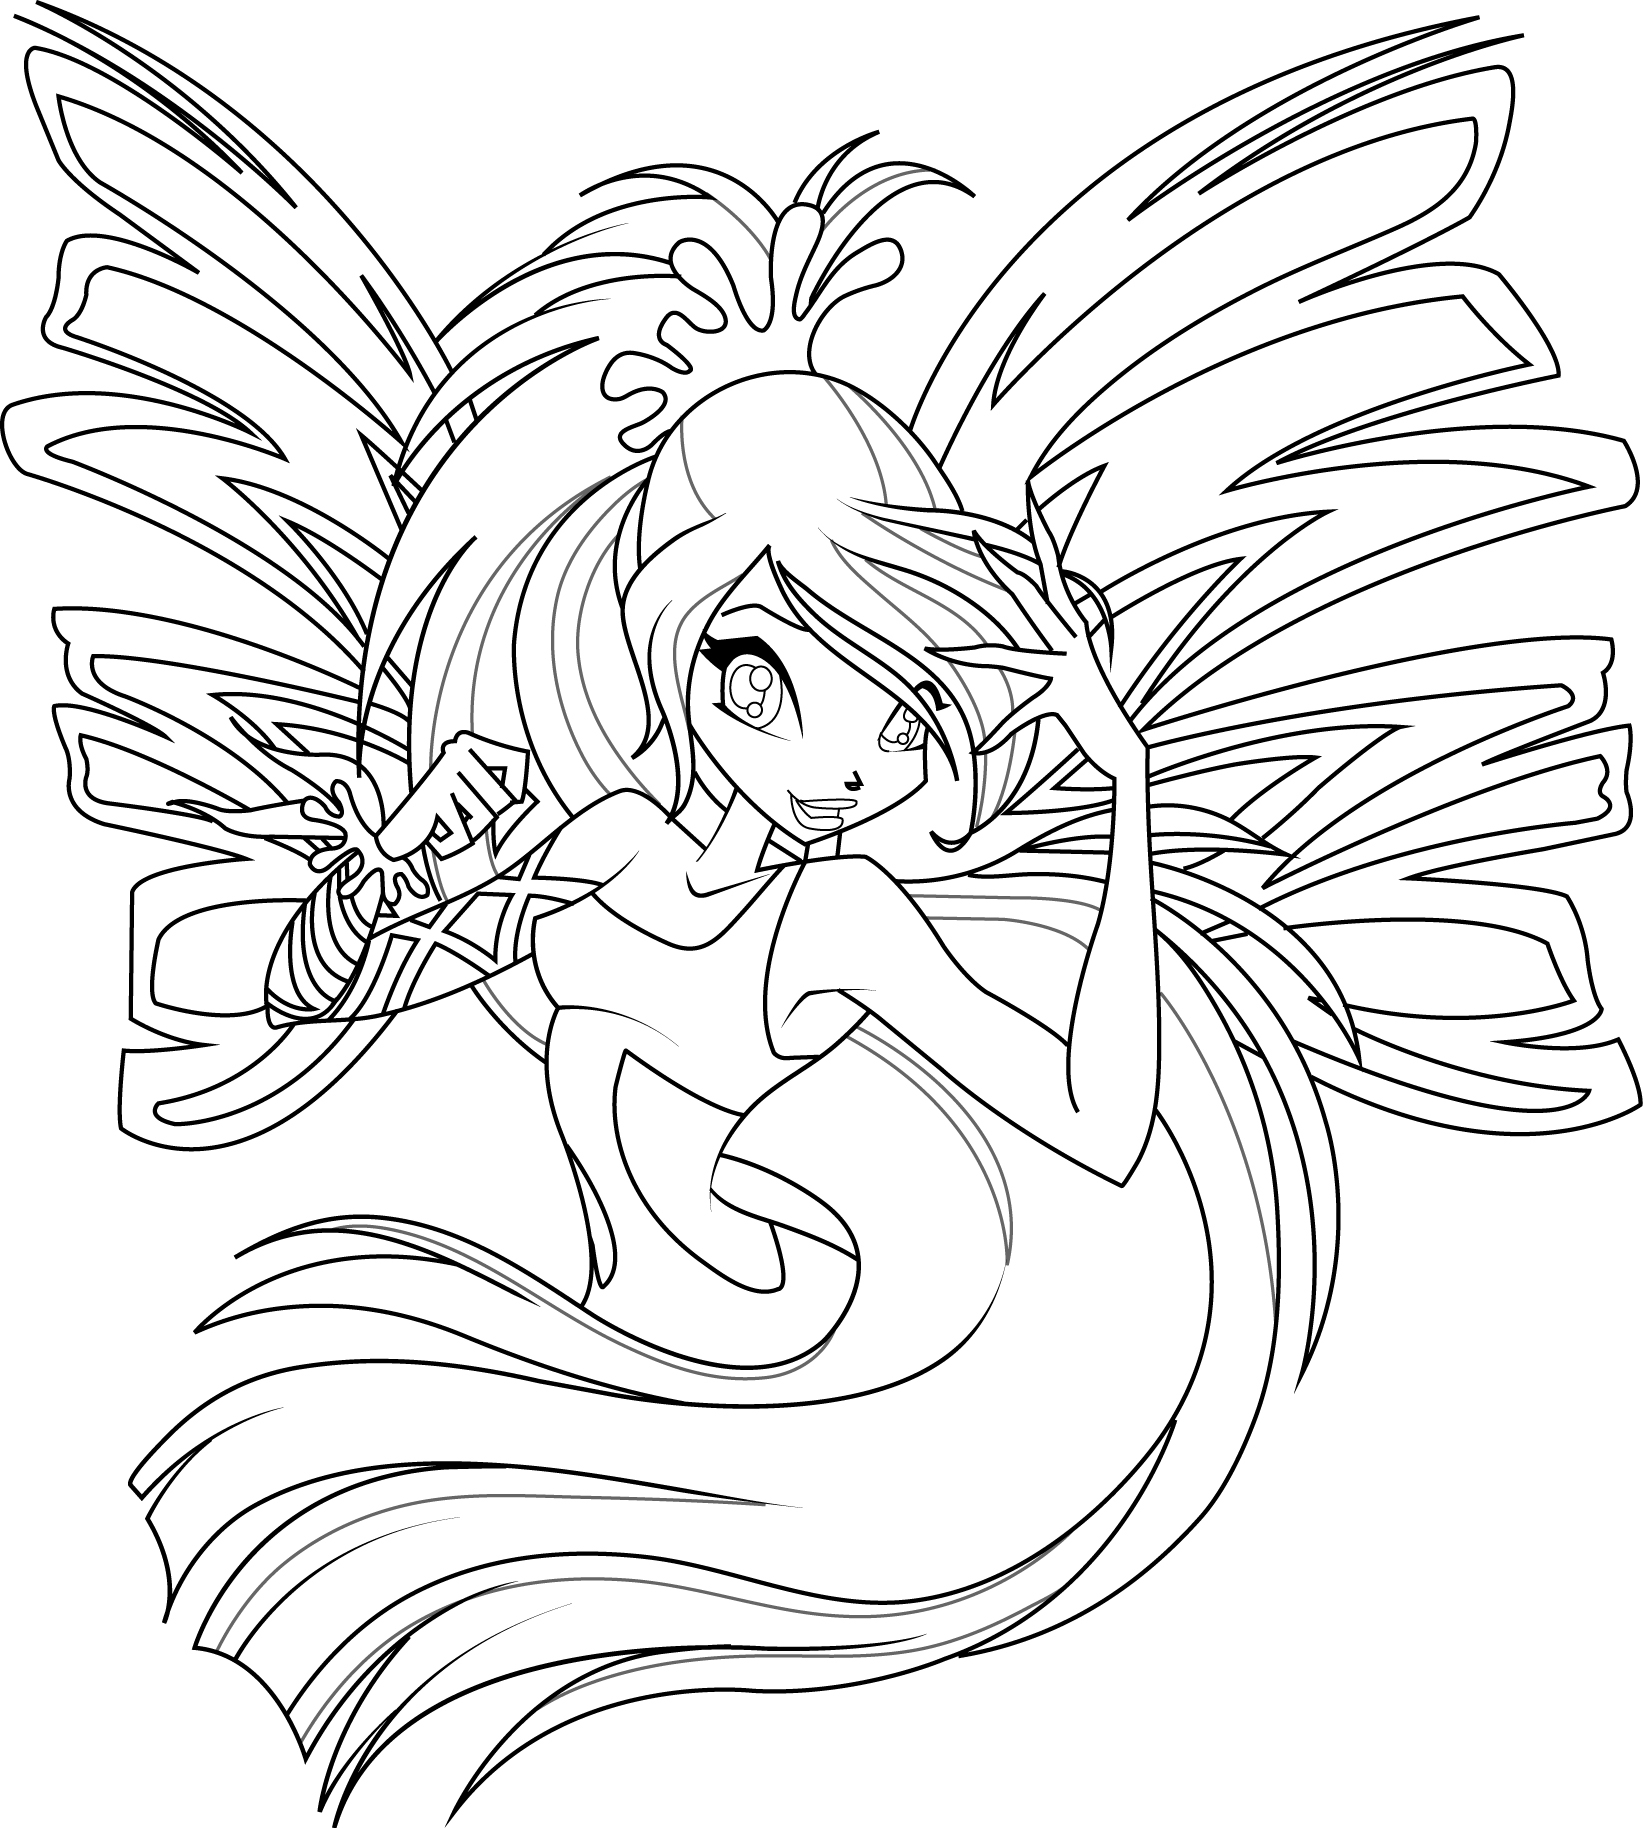 - Coloriage winx bloom ...